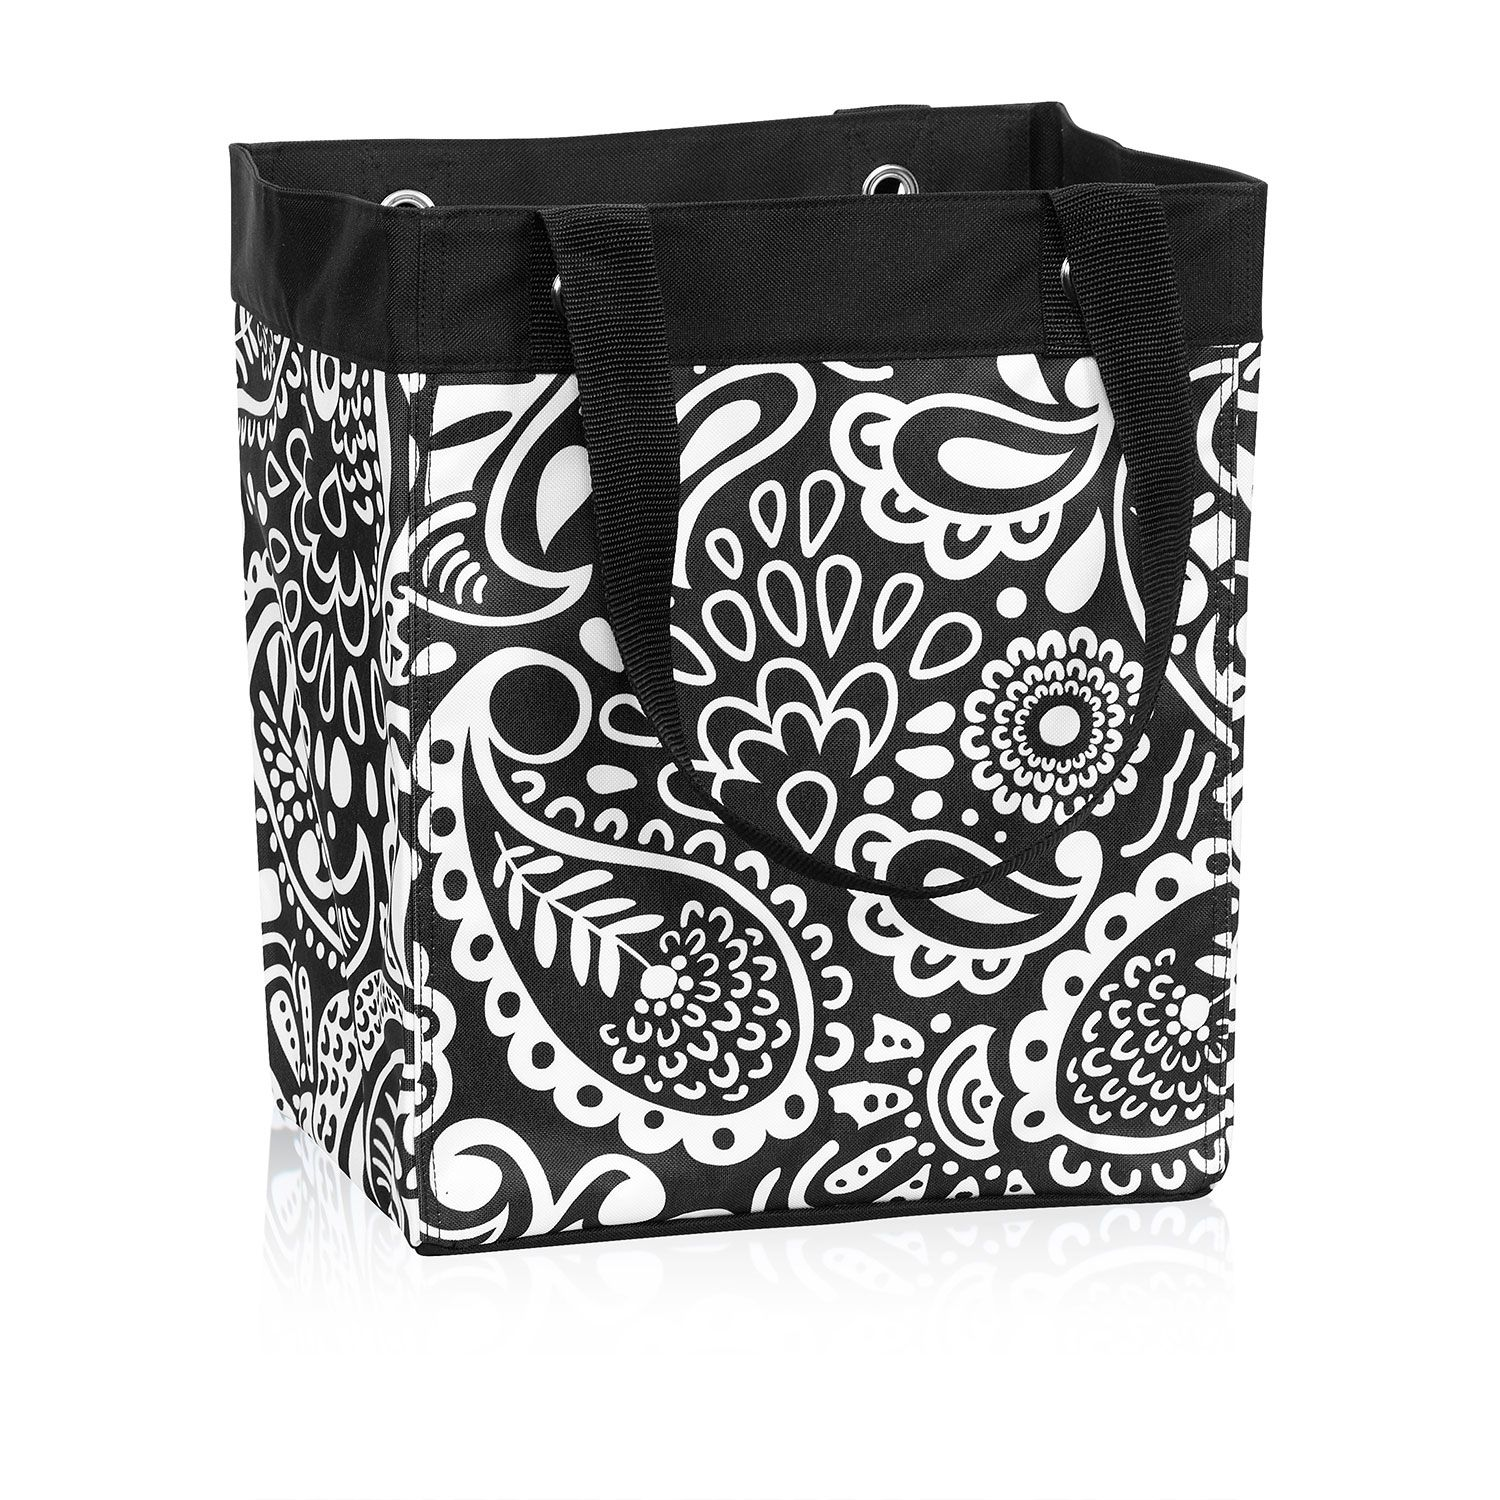 Essential Storage Tote In Black Playful Parade For $28   Head Out To The  Playground Or Take A Day Trip With All Your Essentials In This Roomy Storage  Tote.